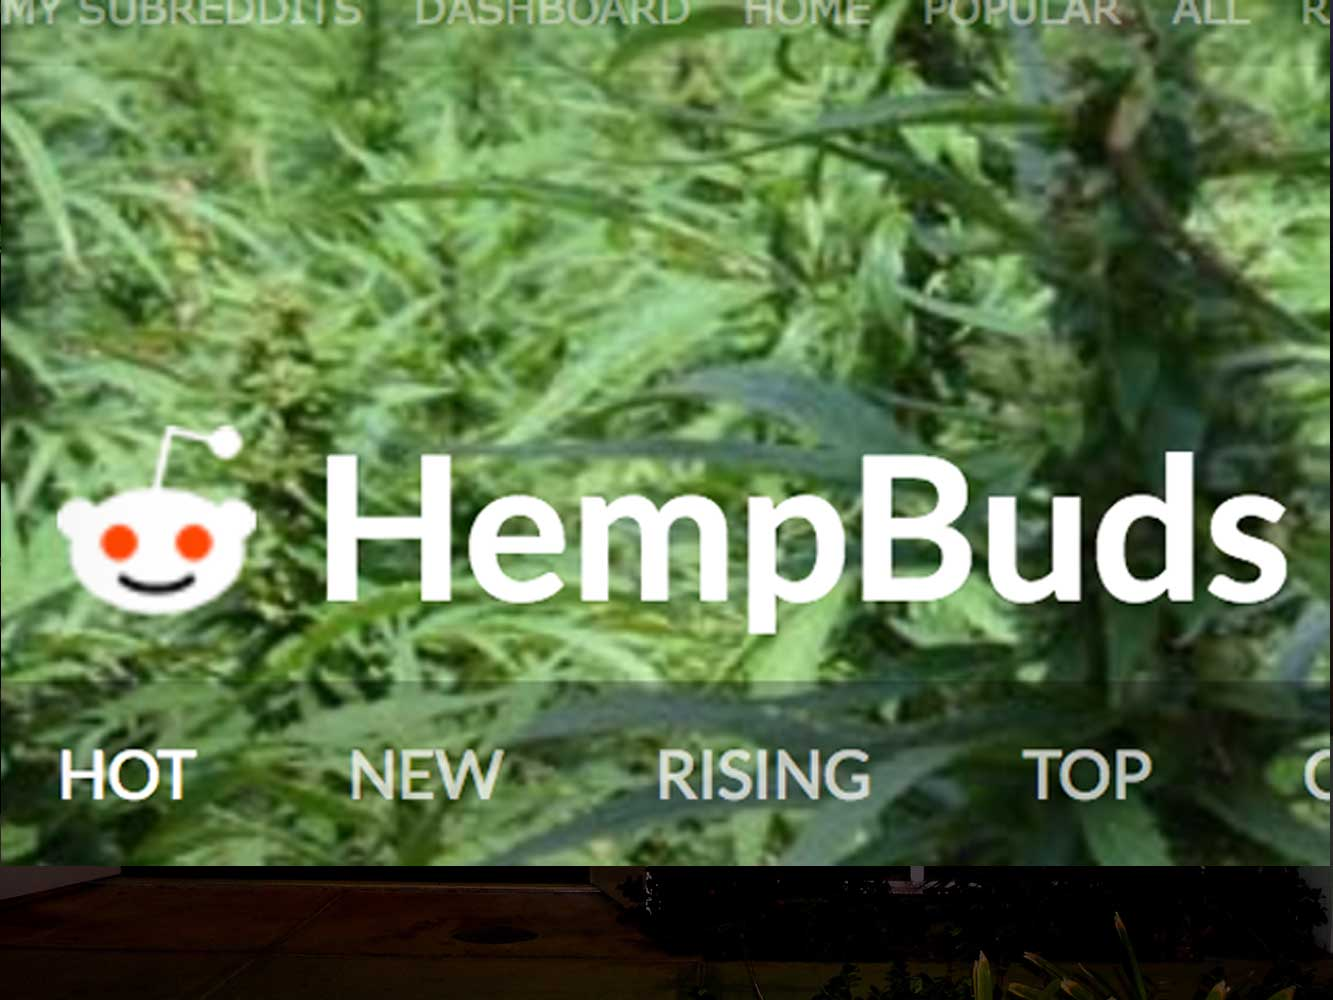 HempBuds at Reddit - come check it out